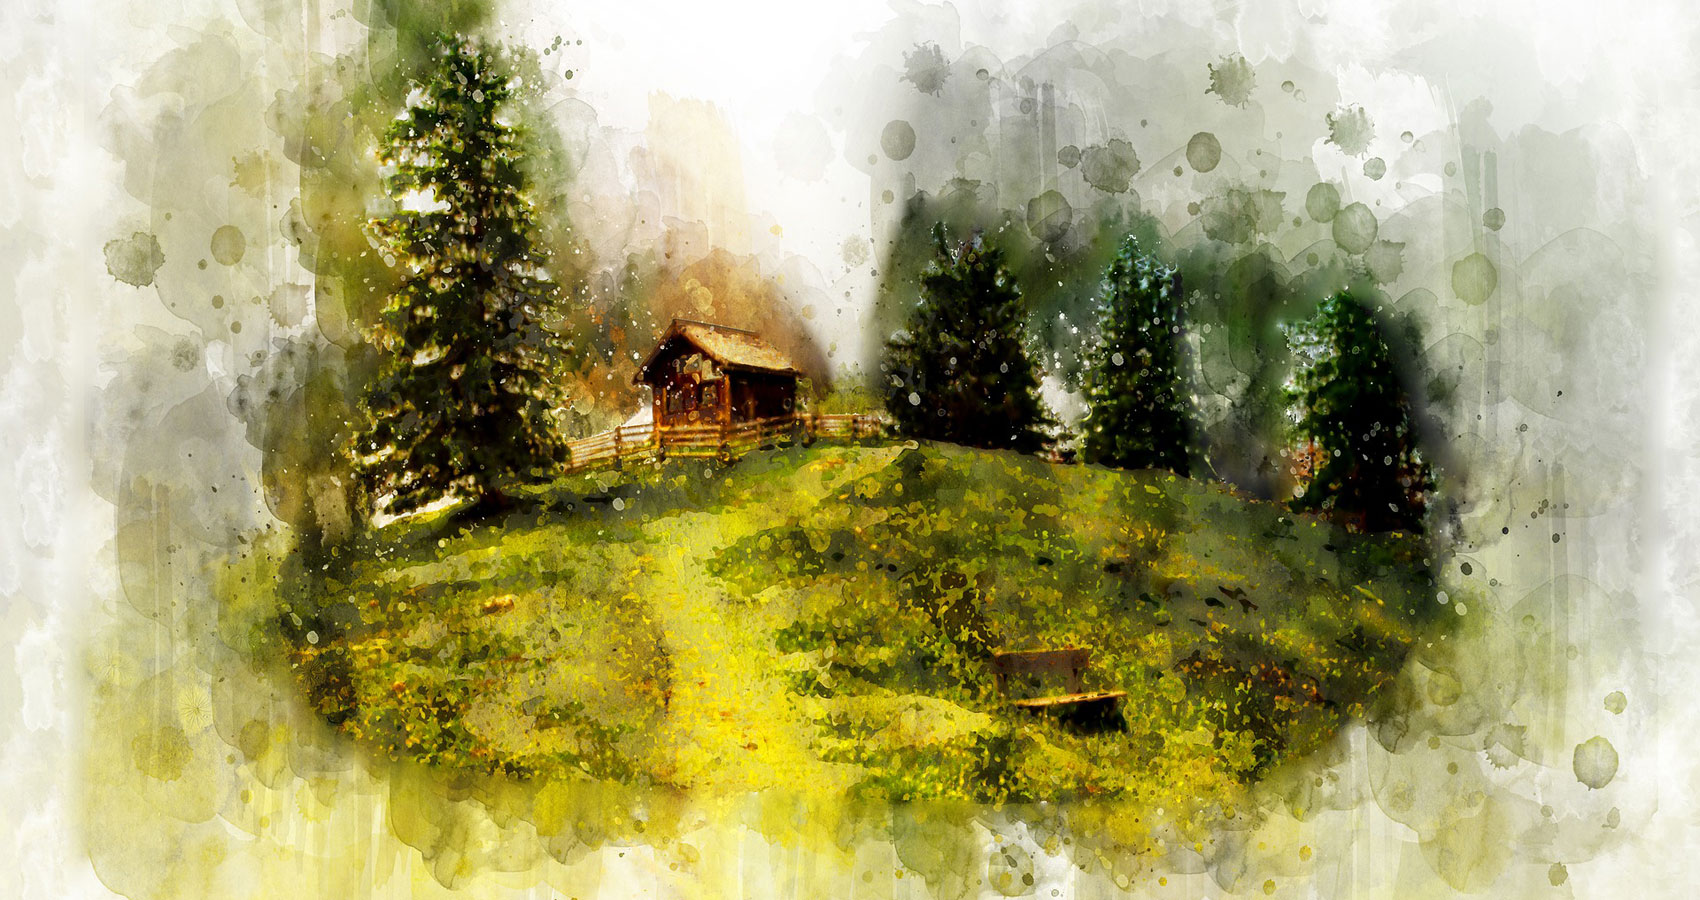 Glimpse of Spring by Joan McNerney at Spillwords.com